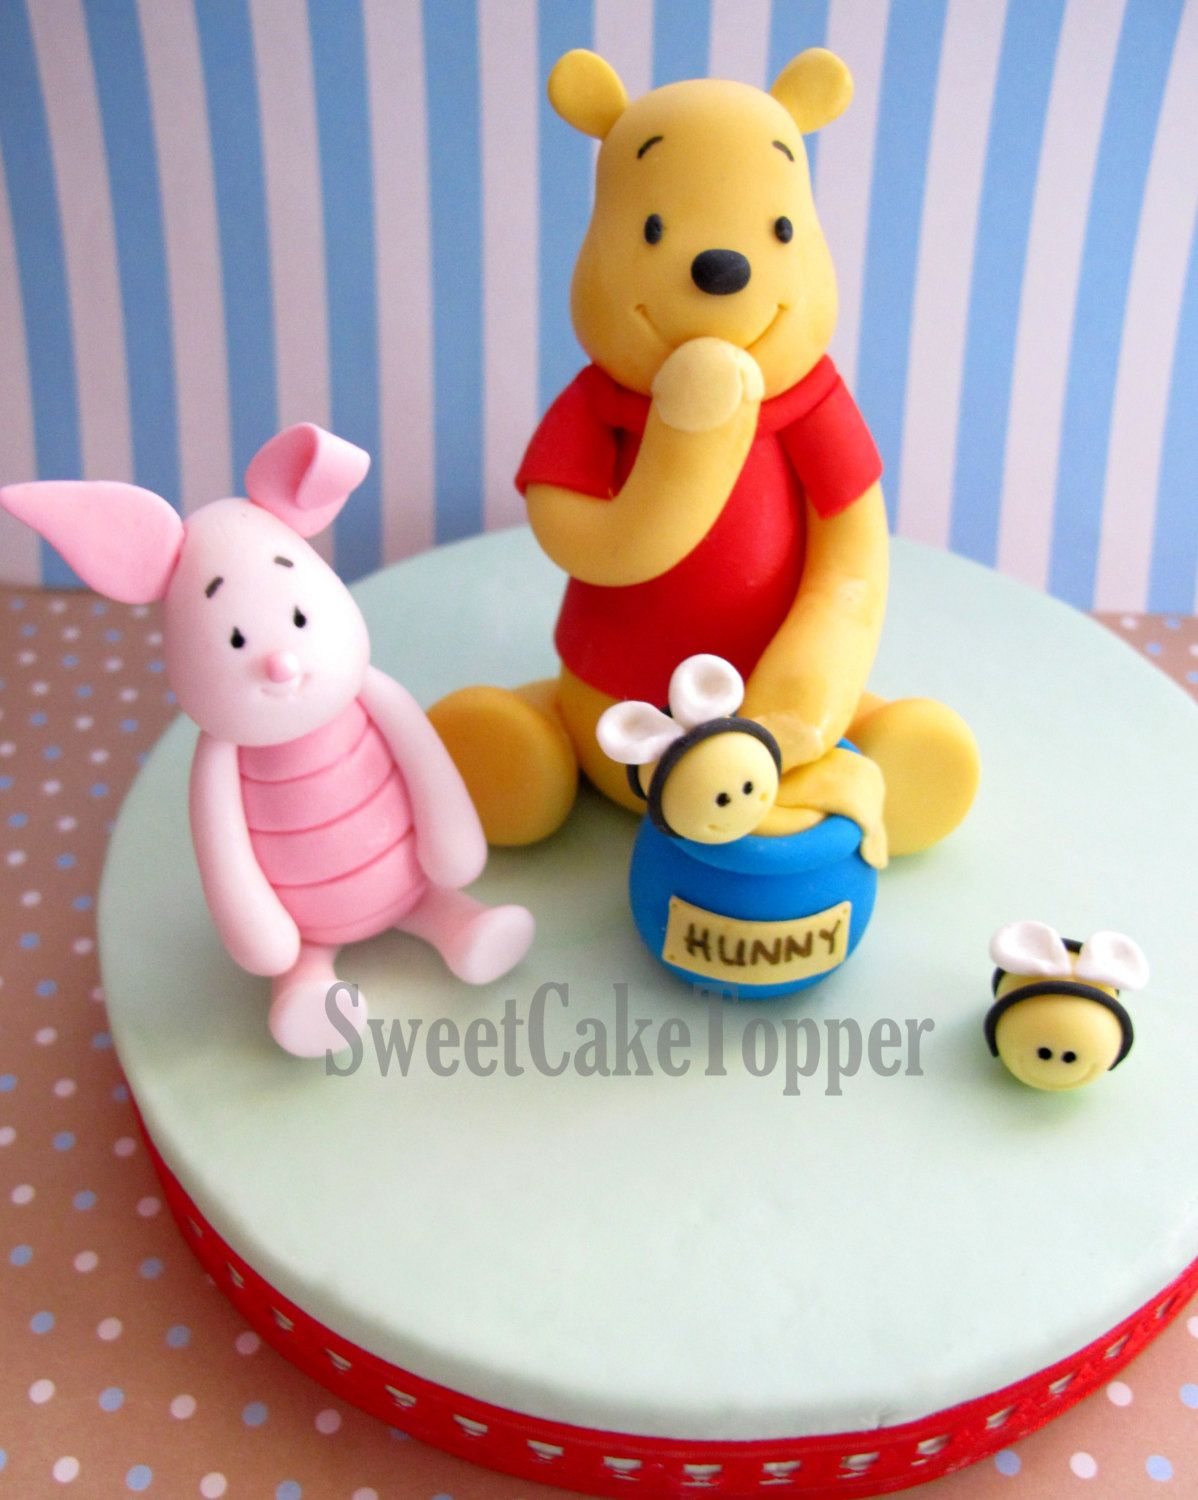 Cake Decor And More Gewerbepark : Winnie the Pooh Inspired Fondant Cake Topper - Handmade Edible Cake Topper - 1 Set. USD30.00, via ...